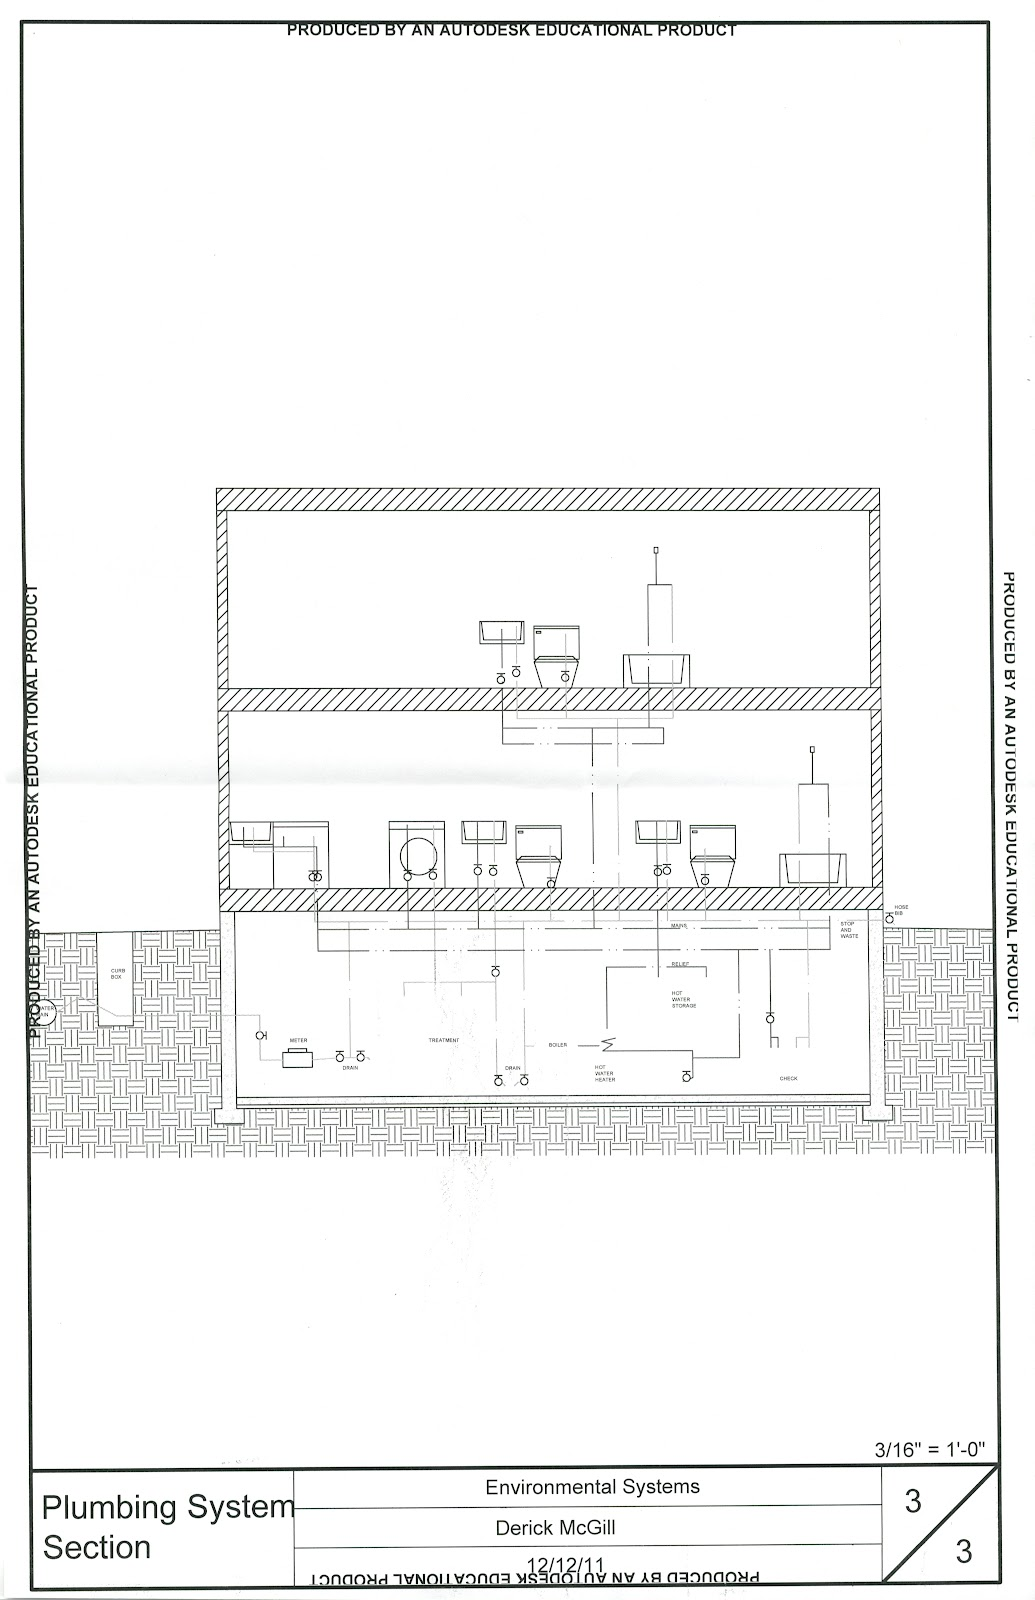 Autocad Works Dericks Design Portfolio Drawing Hvac Systems Residential Plumbing Section